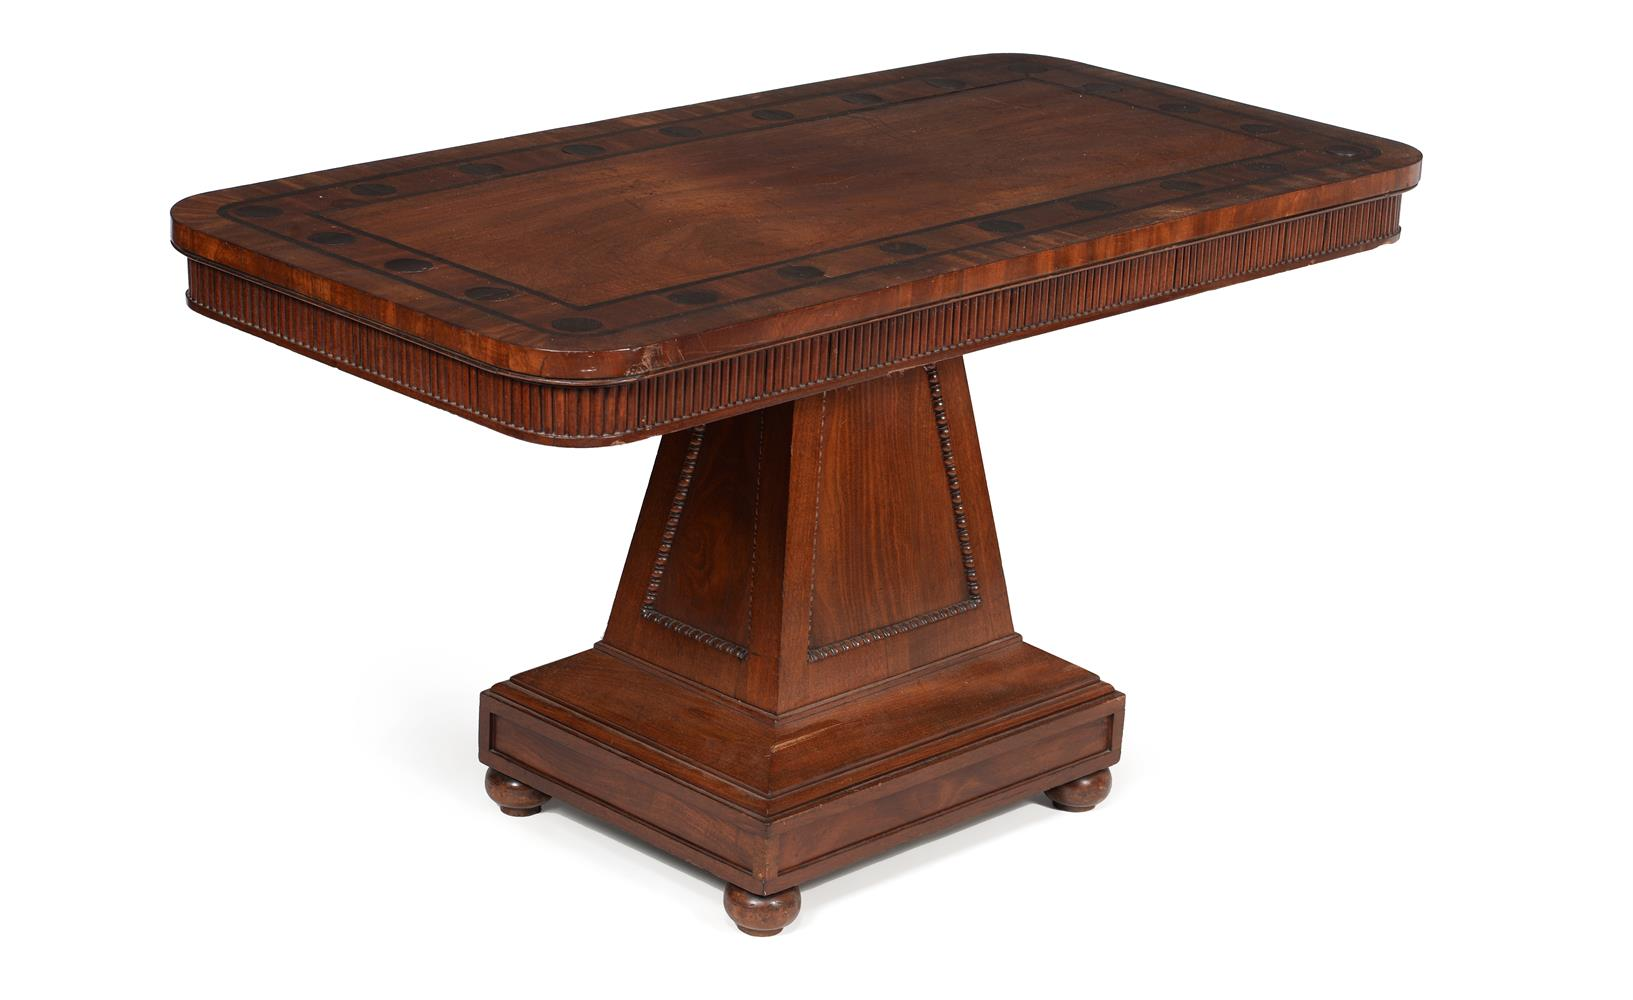 Y A PAIR OF REGENCY MAHOGANY AND MACASSAR EBONY INLAID LIBRARY OR SIDE TABLES, CIRCA 1820 - Image 2 of 5